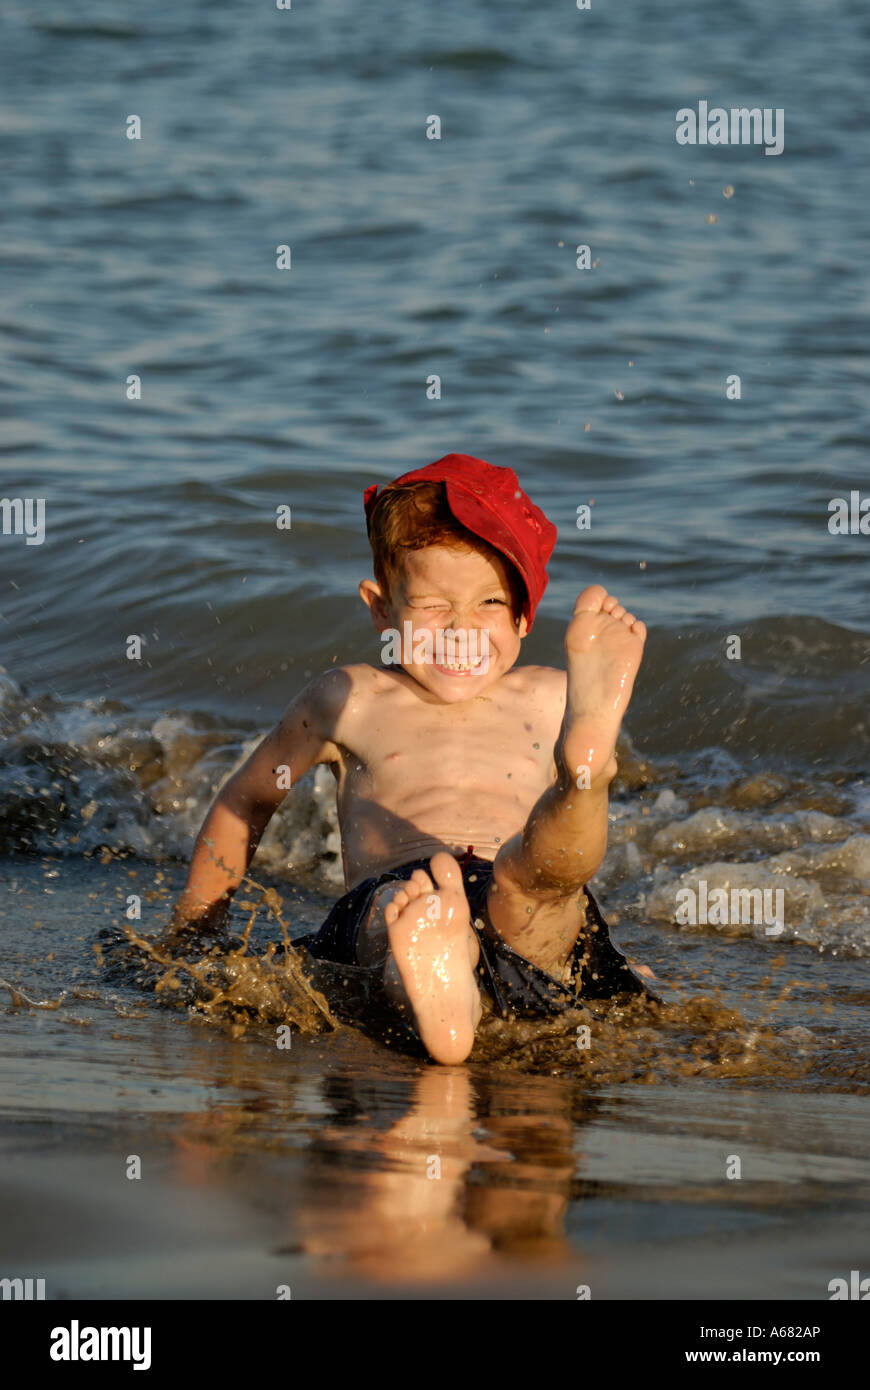 Little boy sits on the beach and splashes with water - Stock Image